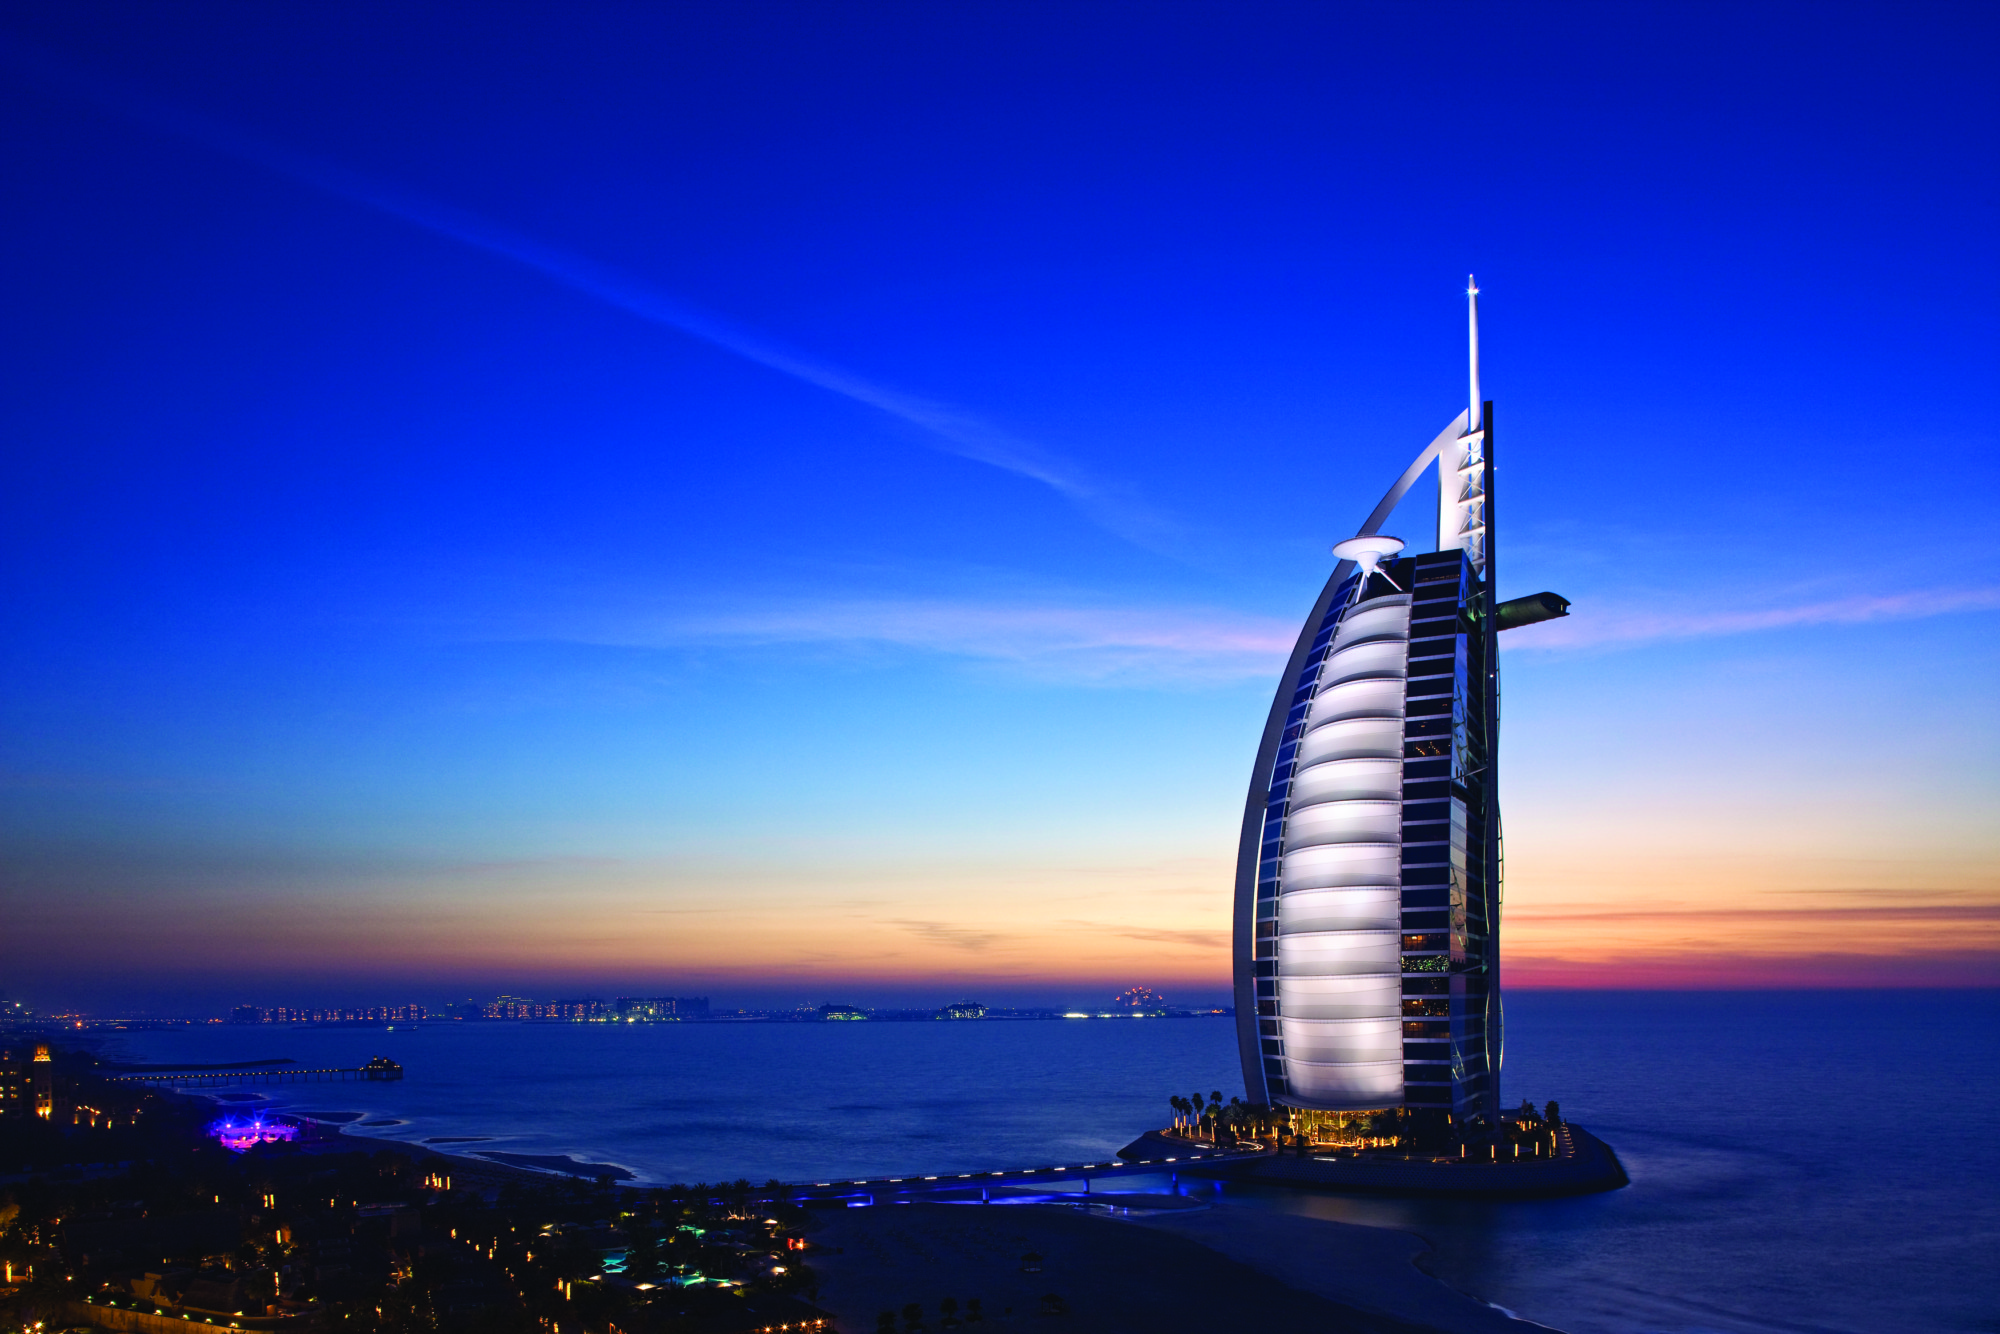 The coolest and most unusual buildings in dubai Burj al arab architecture